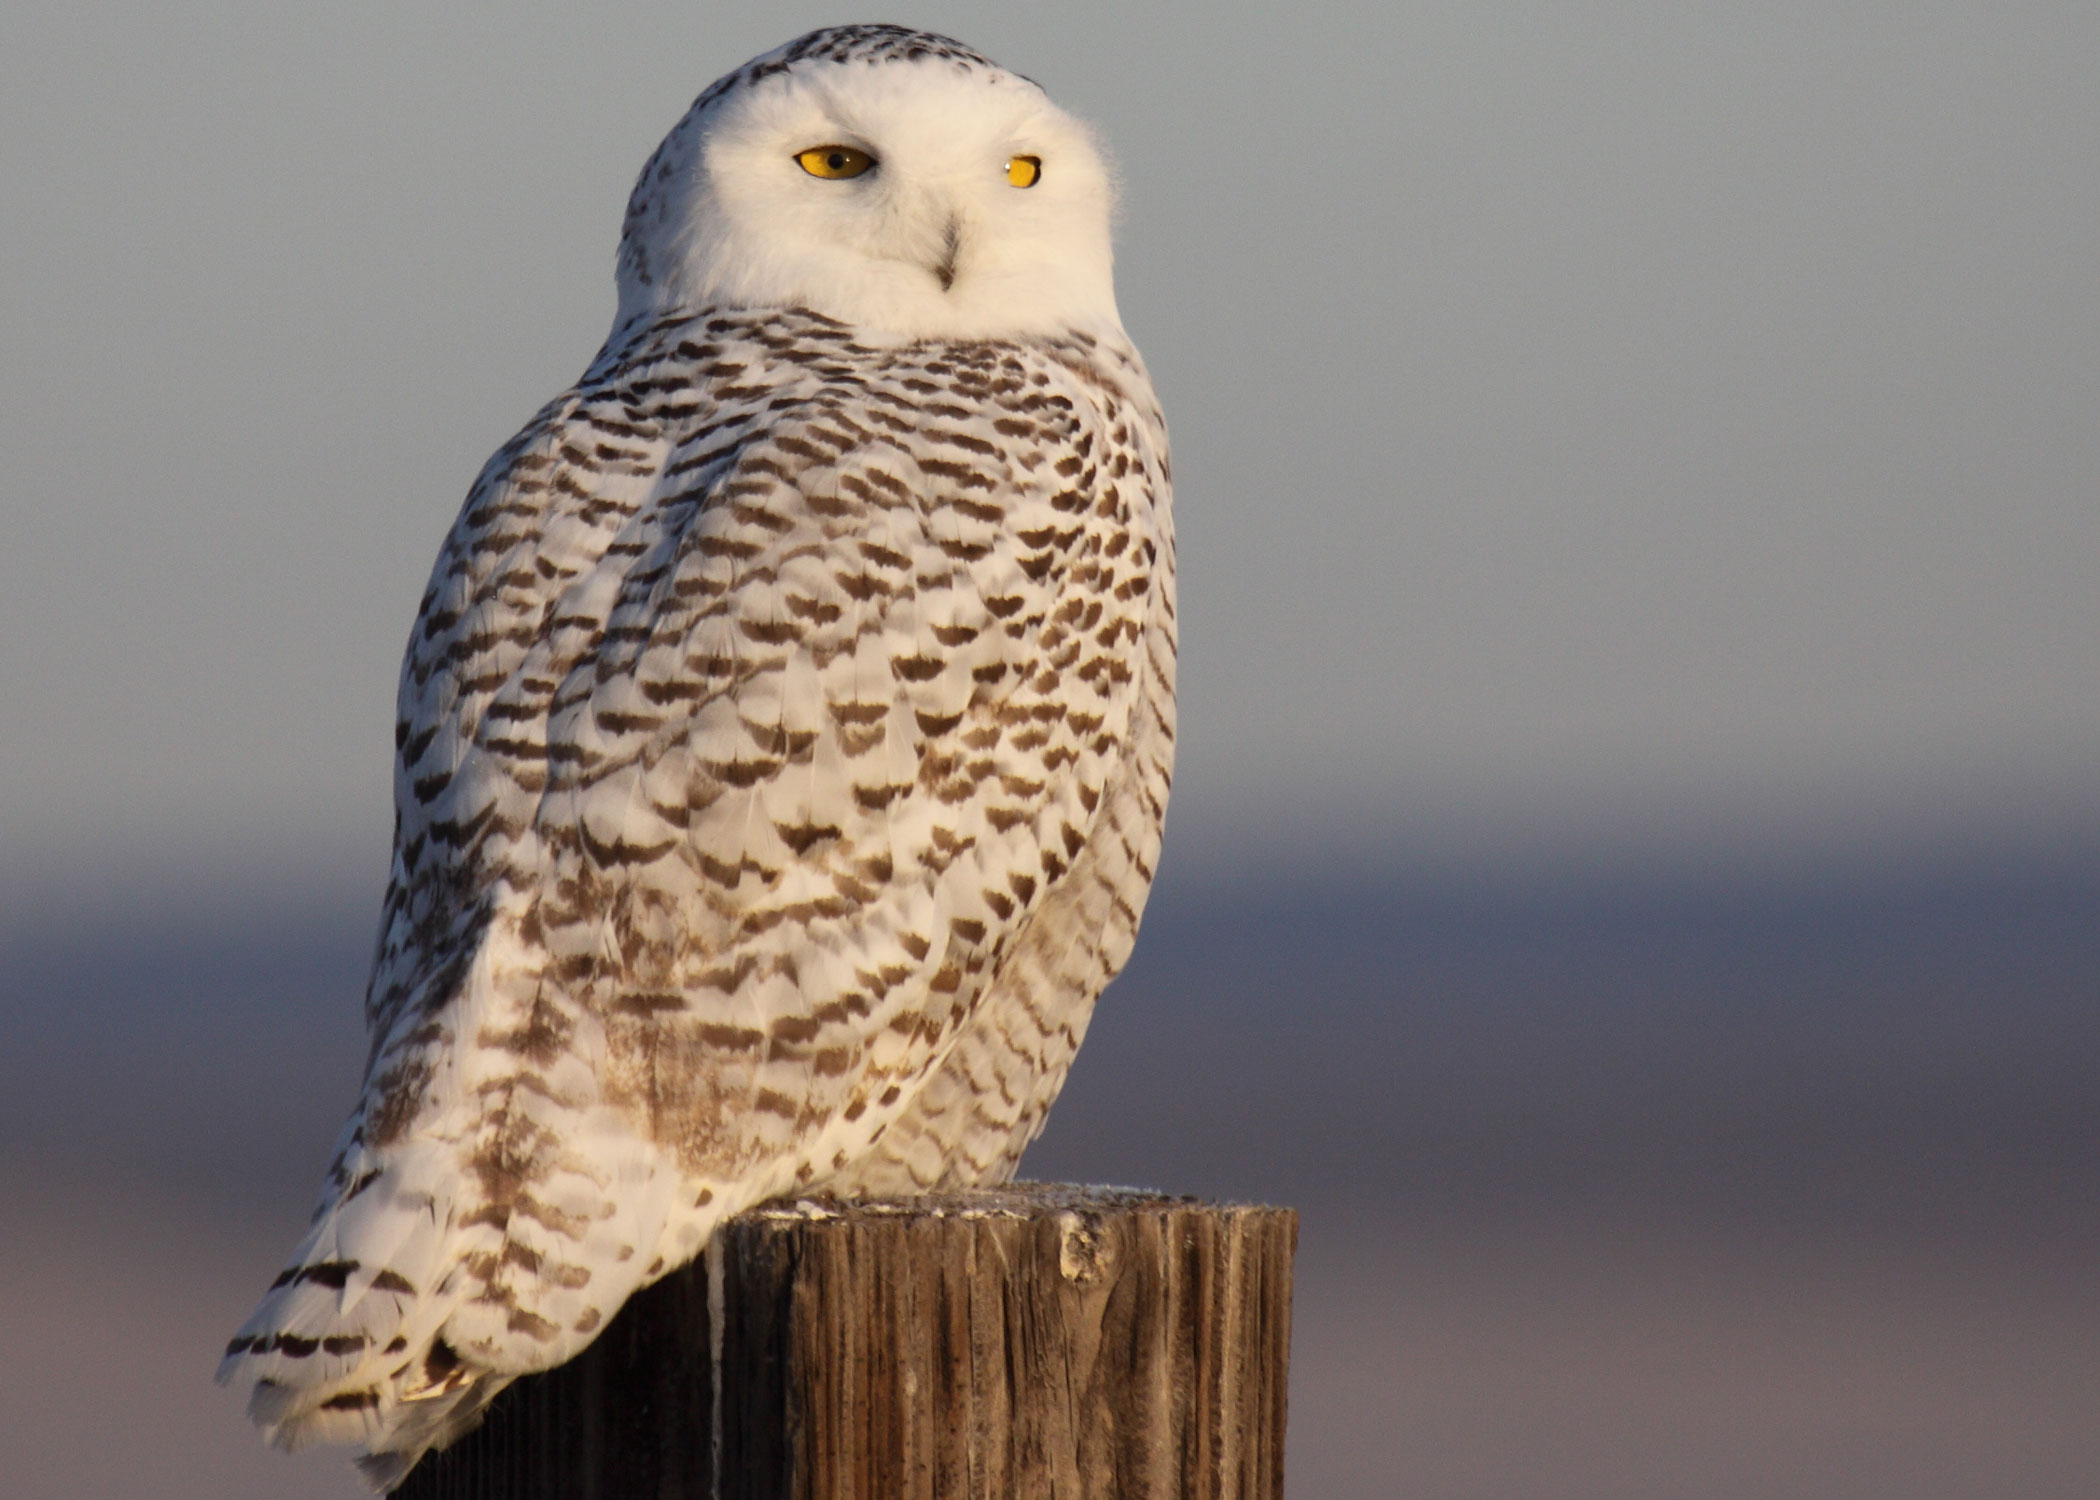 SNOWY OWL photographed near Burns, Oregon in December. SNOWY OWLs ...